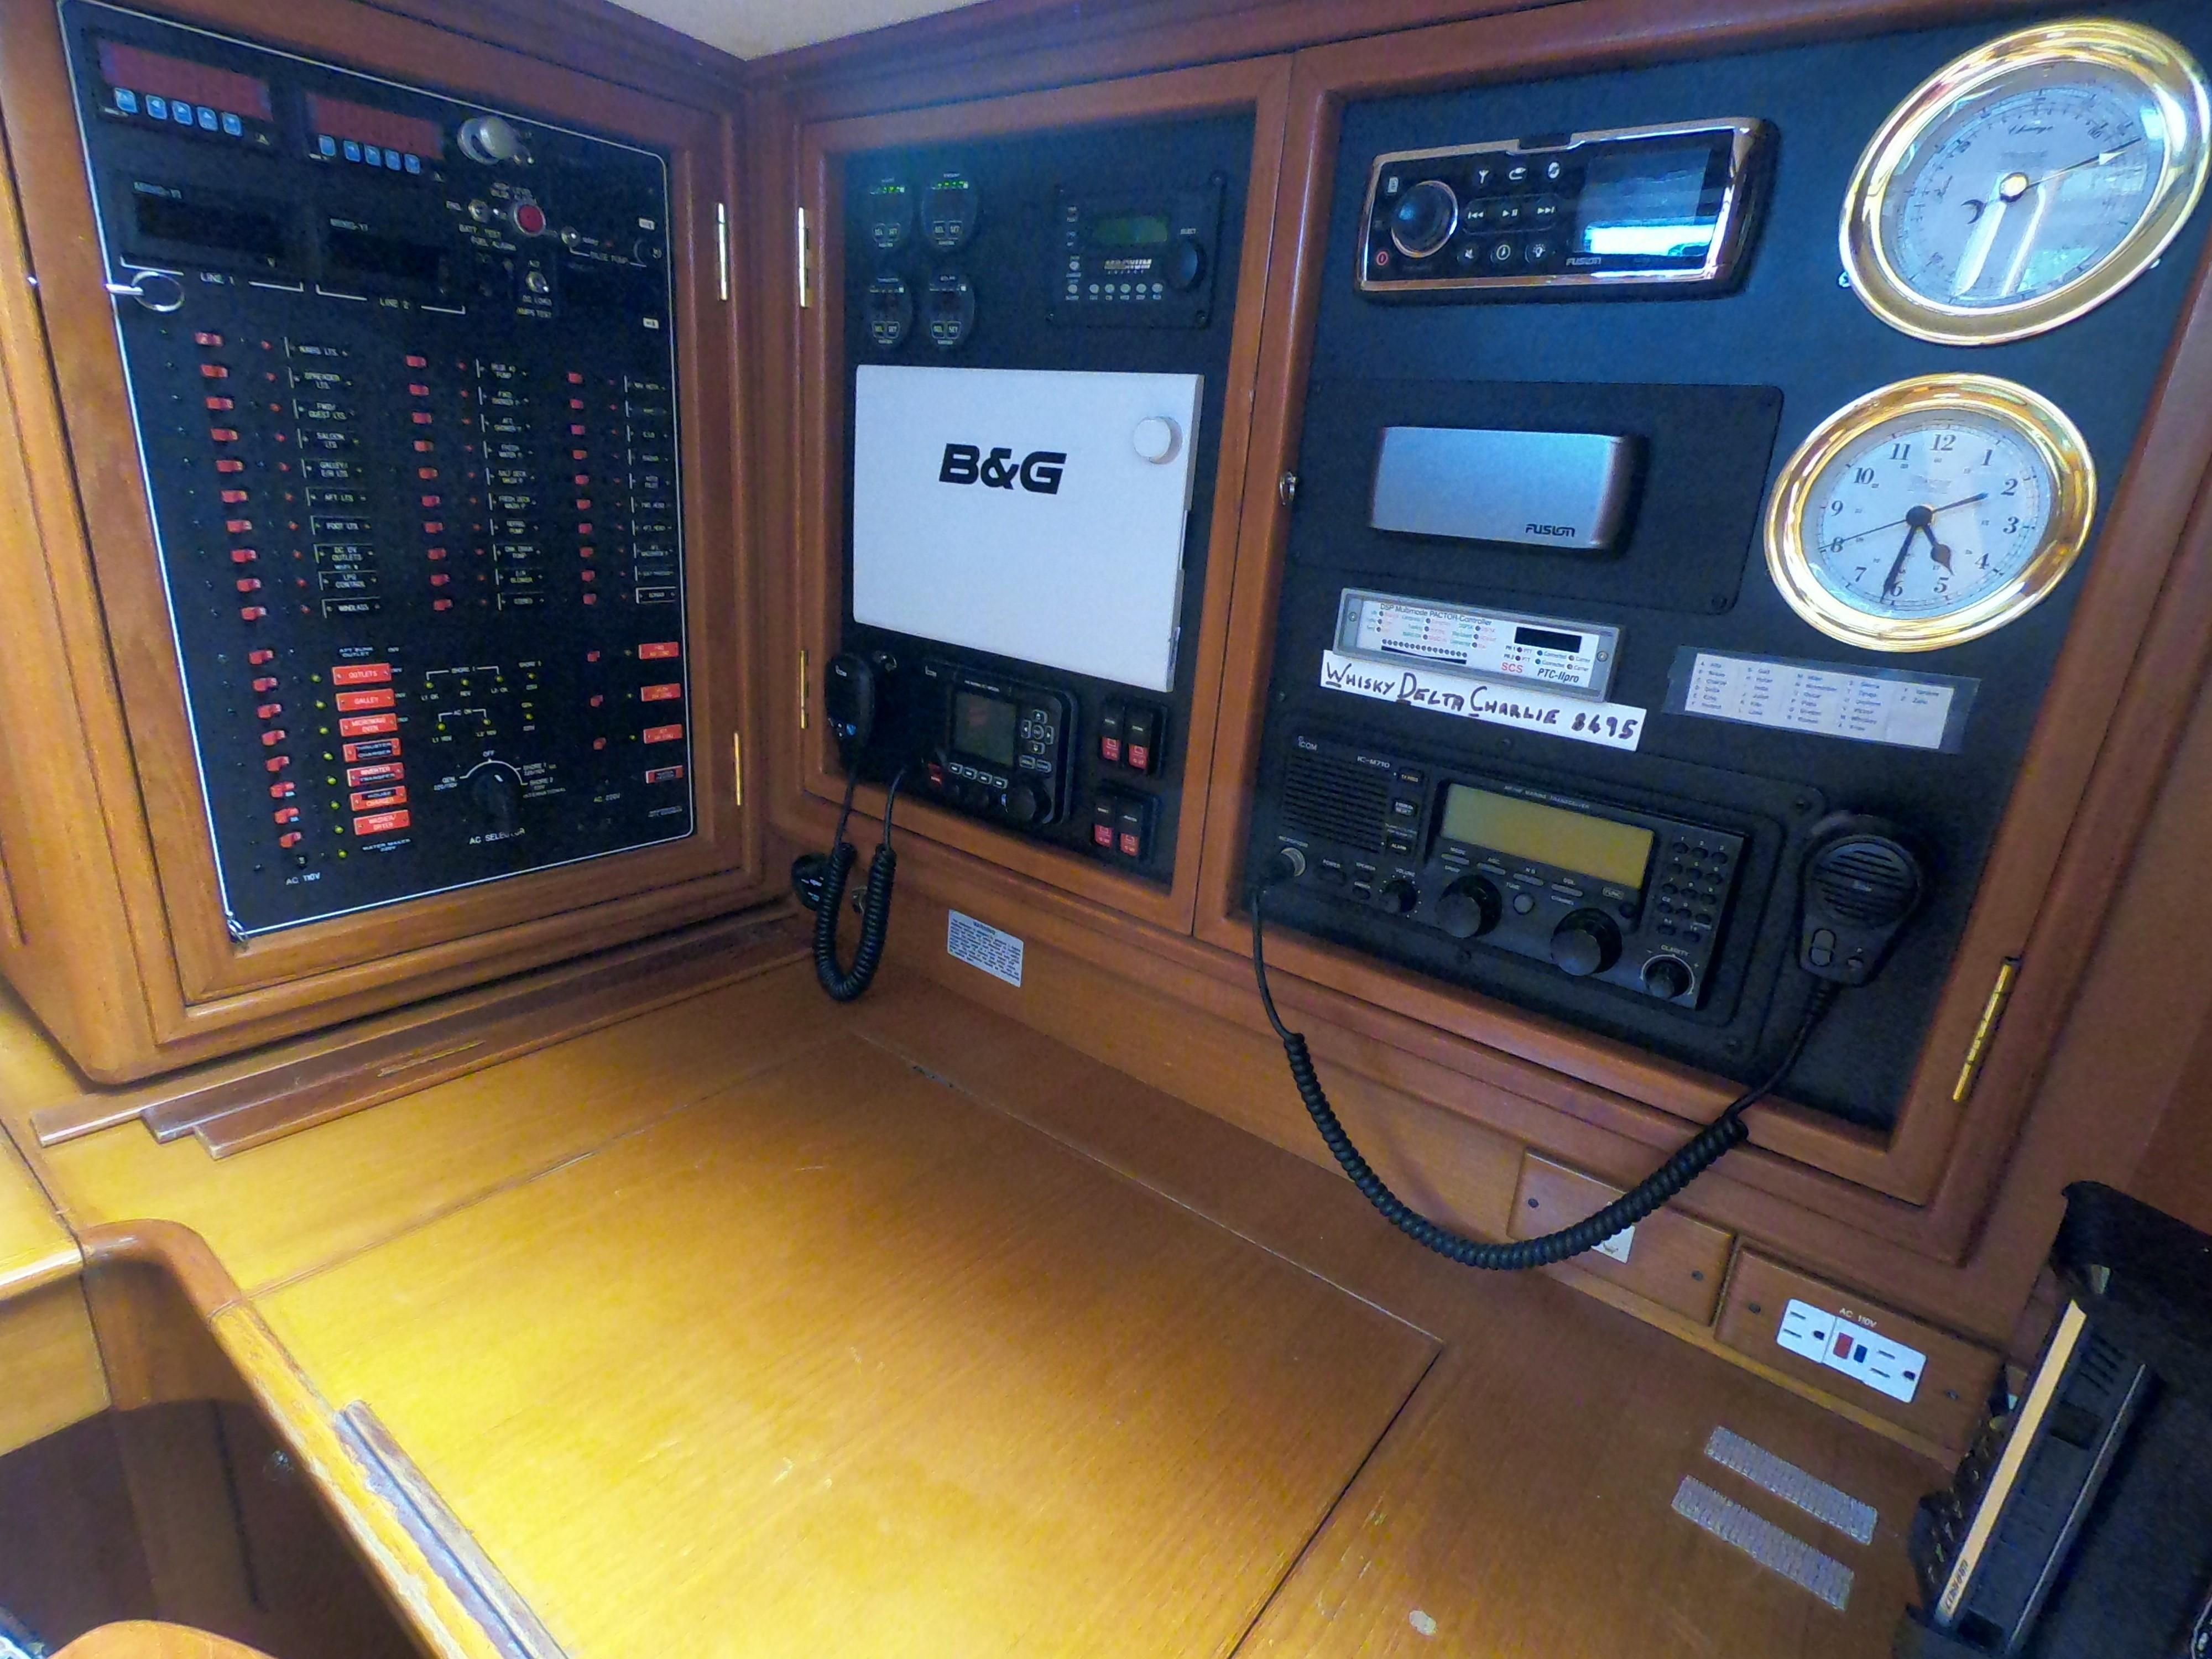 Electrical Panel and Communications